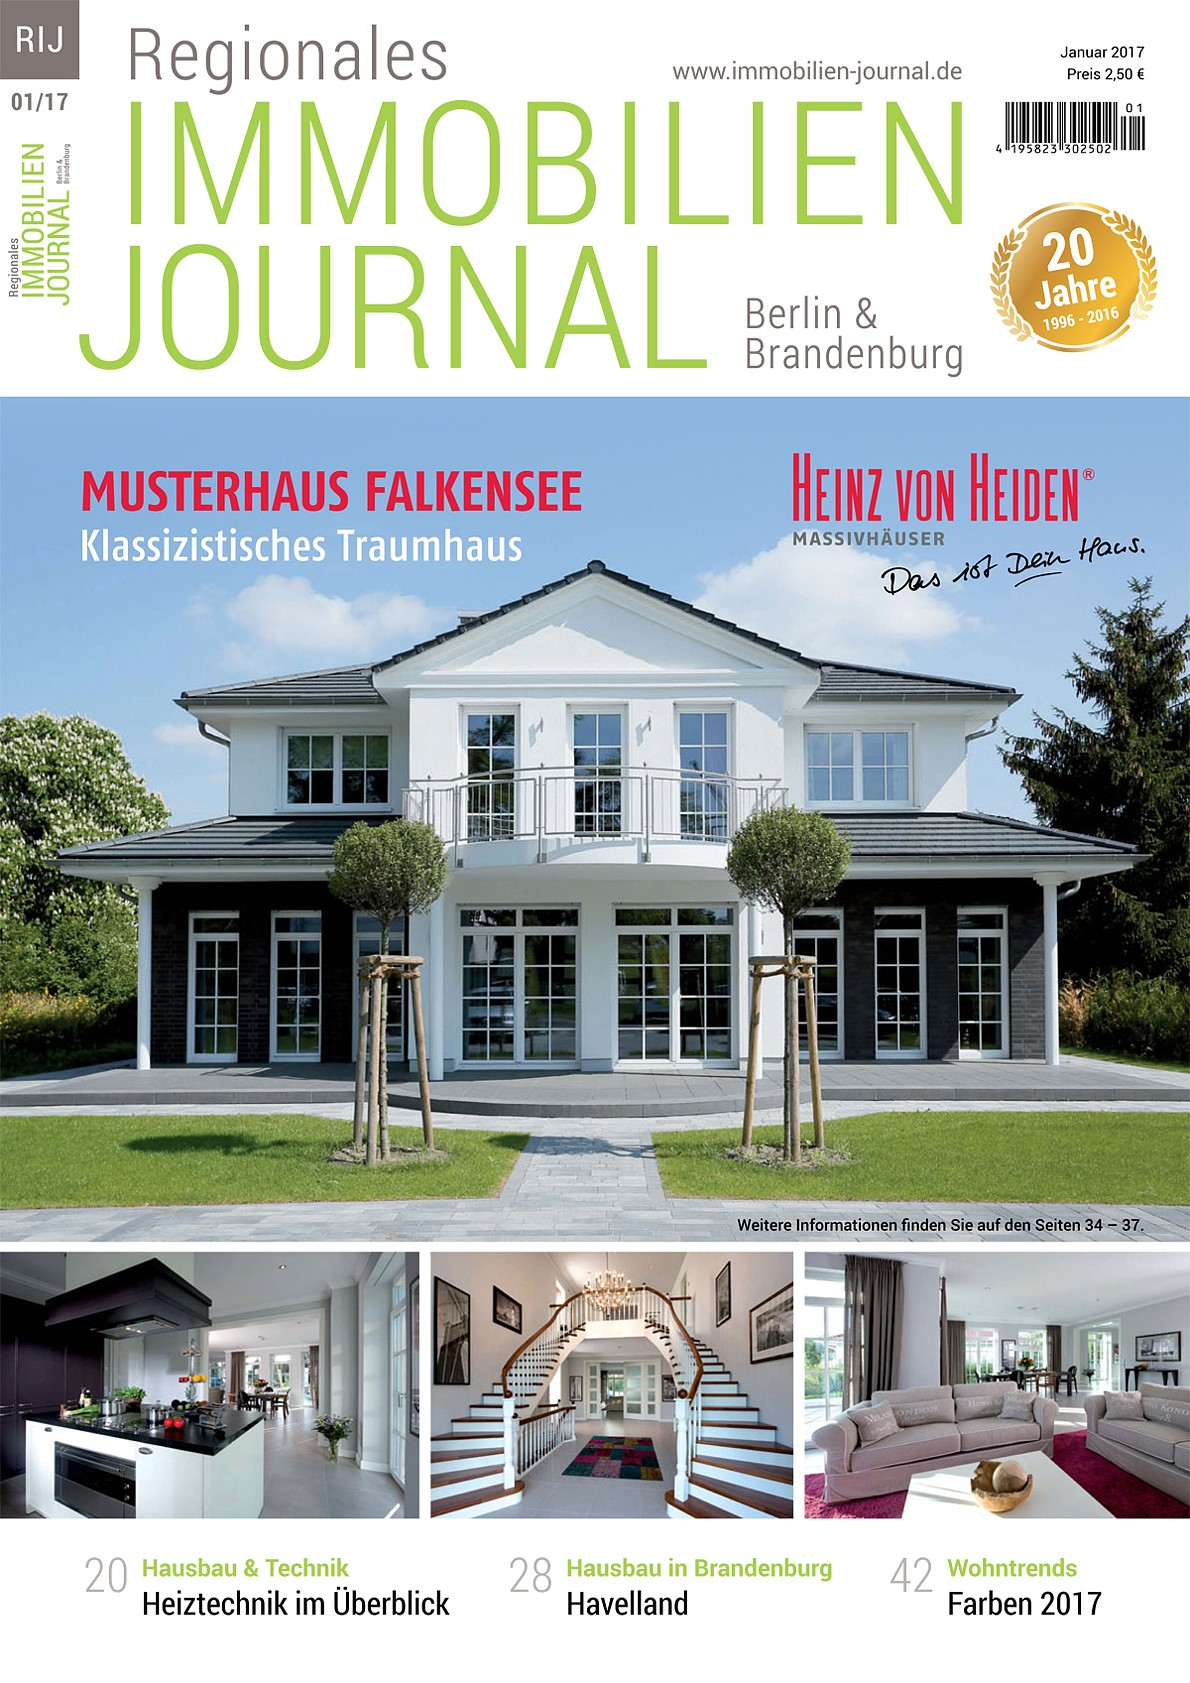 Regionales immobilien journal berlin brandenburg januar for Hausbaufirmen brandenburg